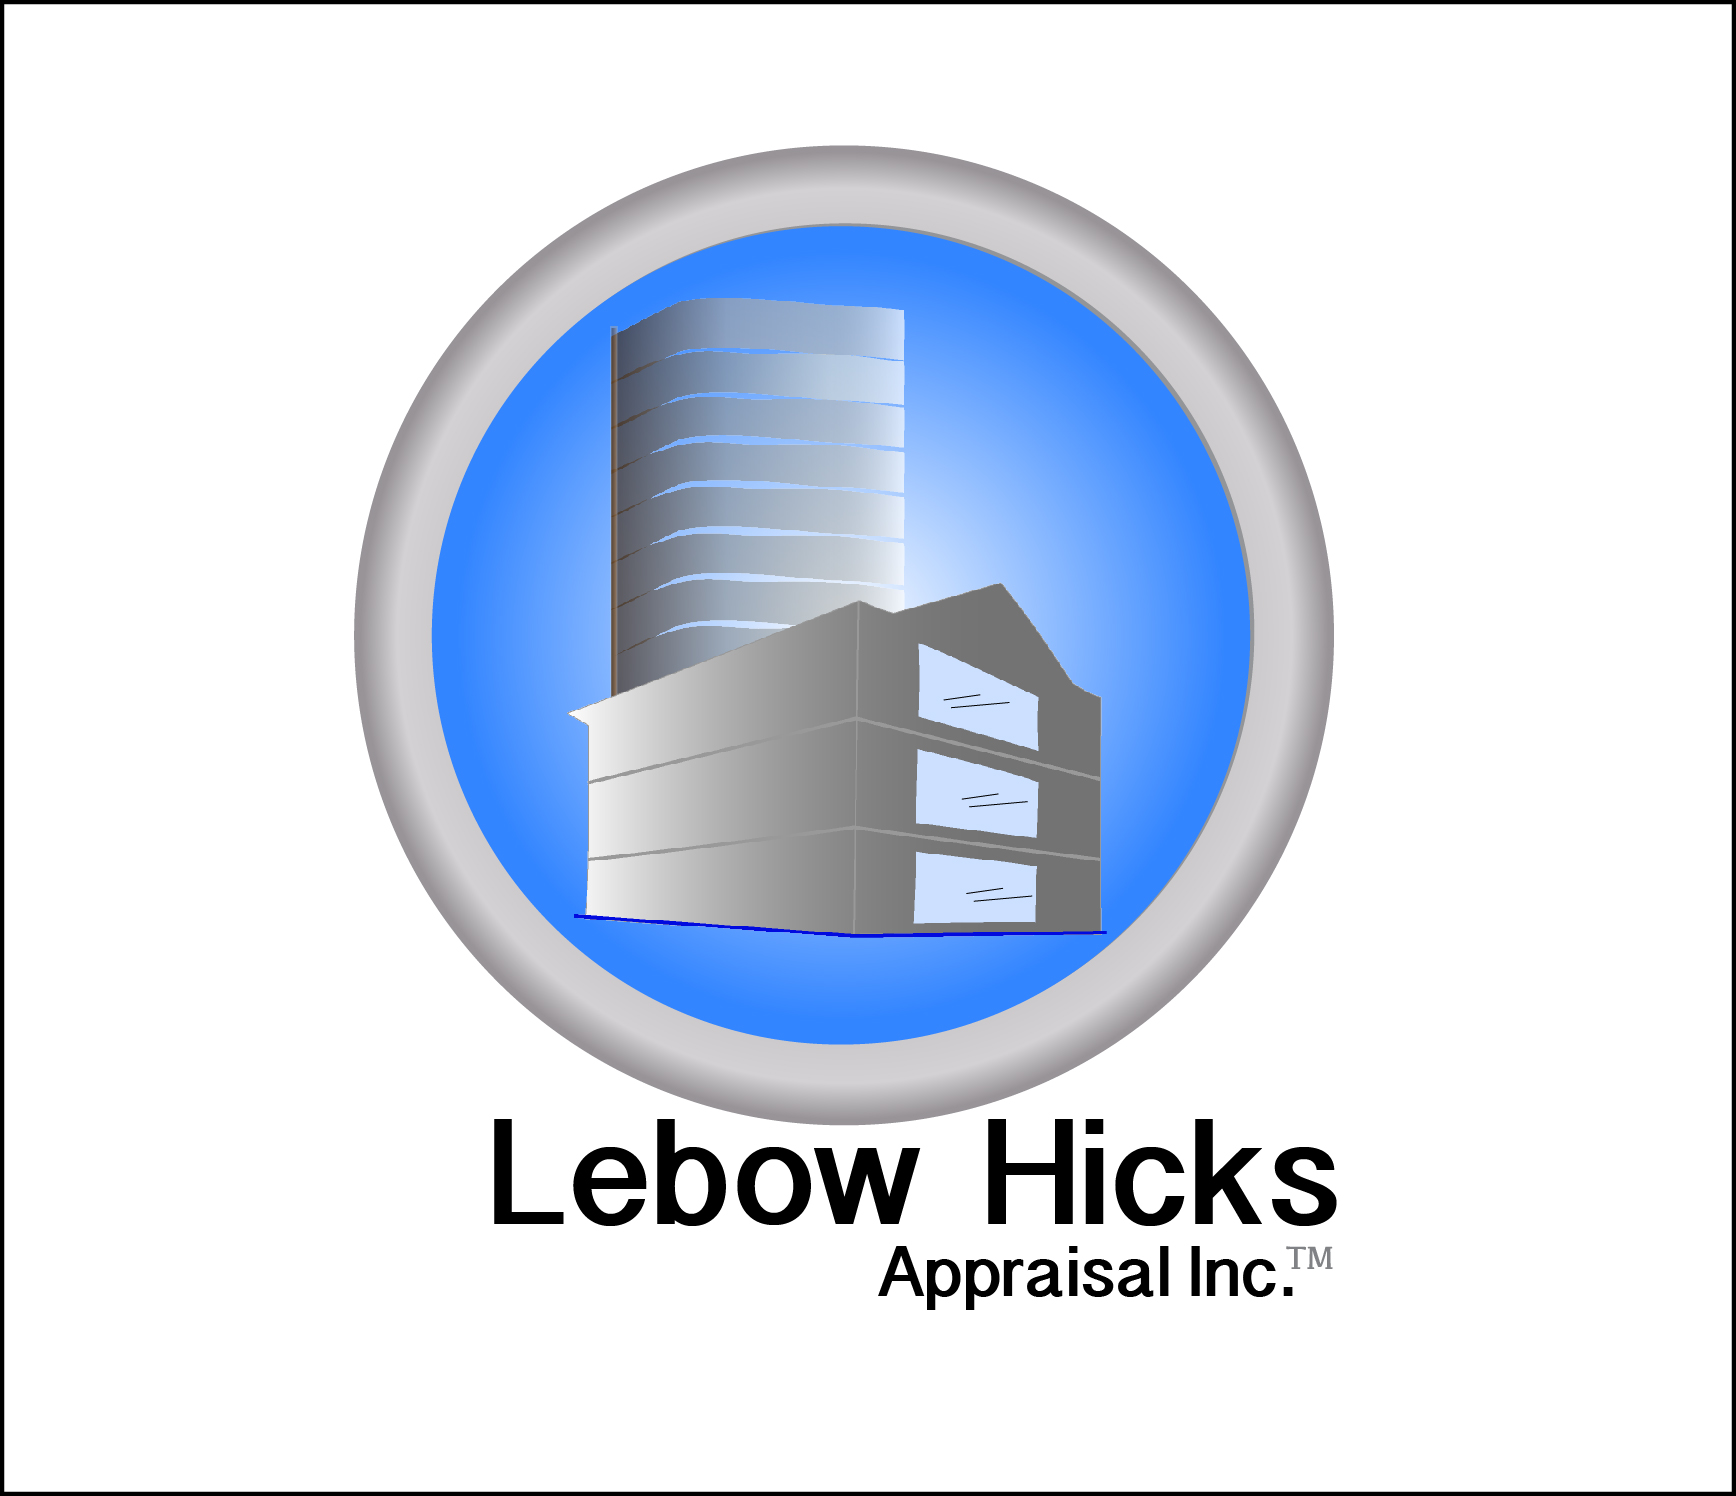 Logo Design by Nancy Grant - Entry No. 30 in the Logo Design Contest Fun Logo Design for Lebow, Hicks Appraisal Inc..